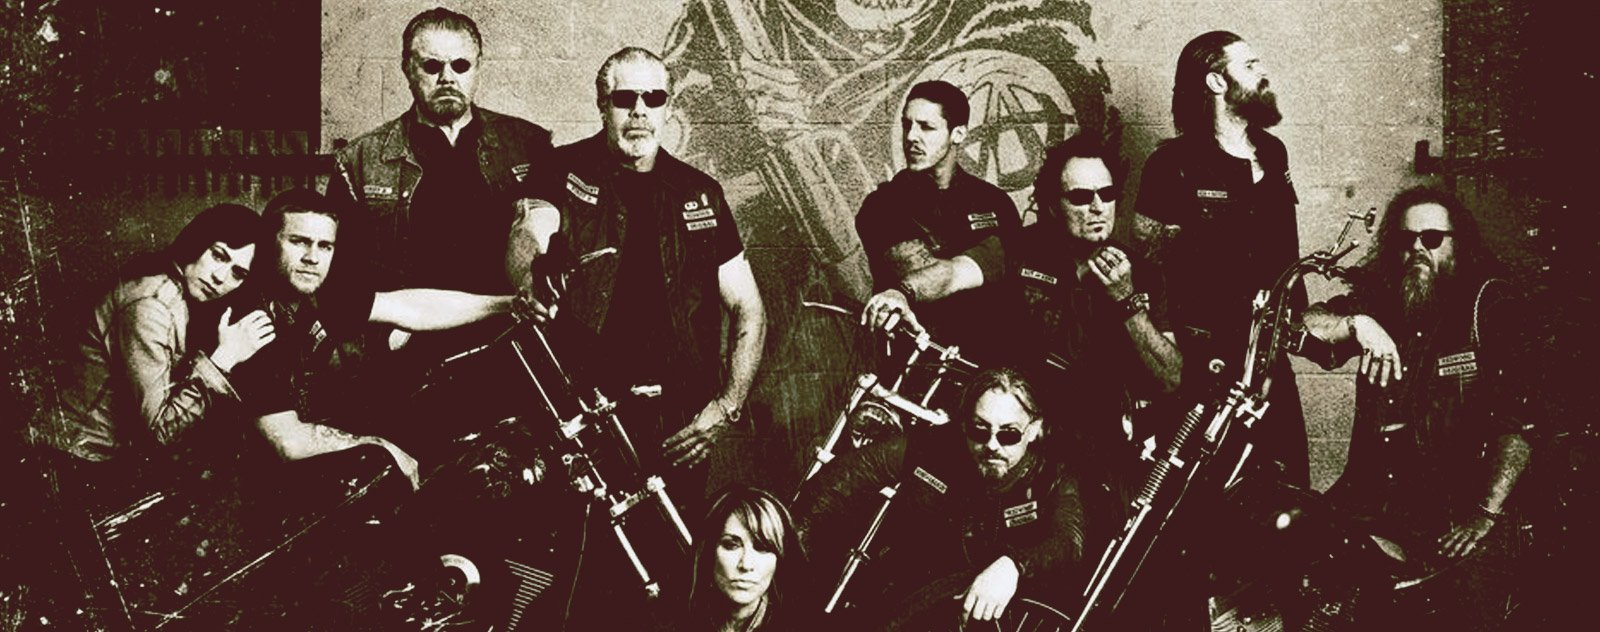 Sons Of Anarchy Biker's